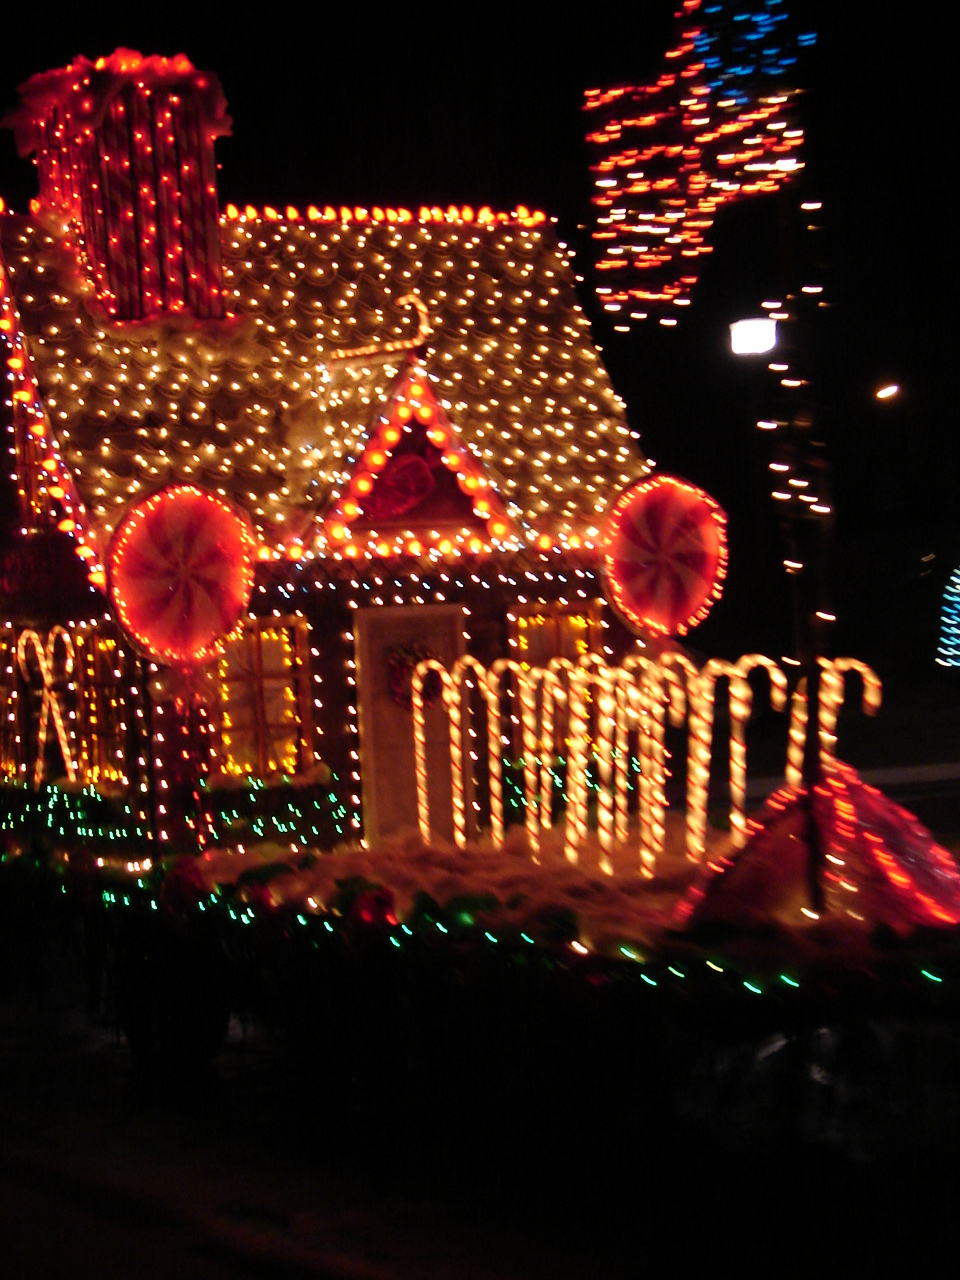 Each December Moab Has An Electric Light Parade People Come Up With Some Pretty Creative Floats Others Put A Few Lights On Their Business Truck And Call